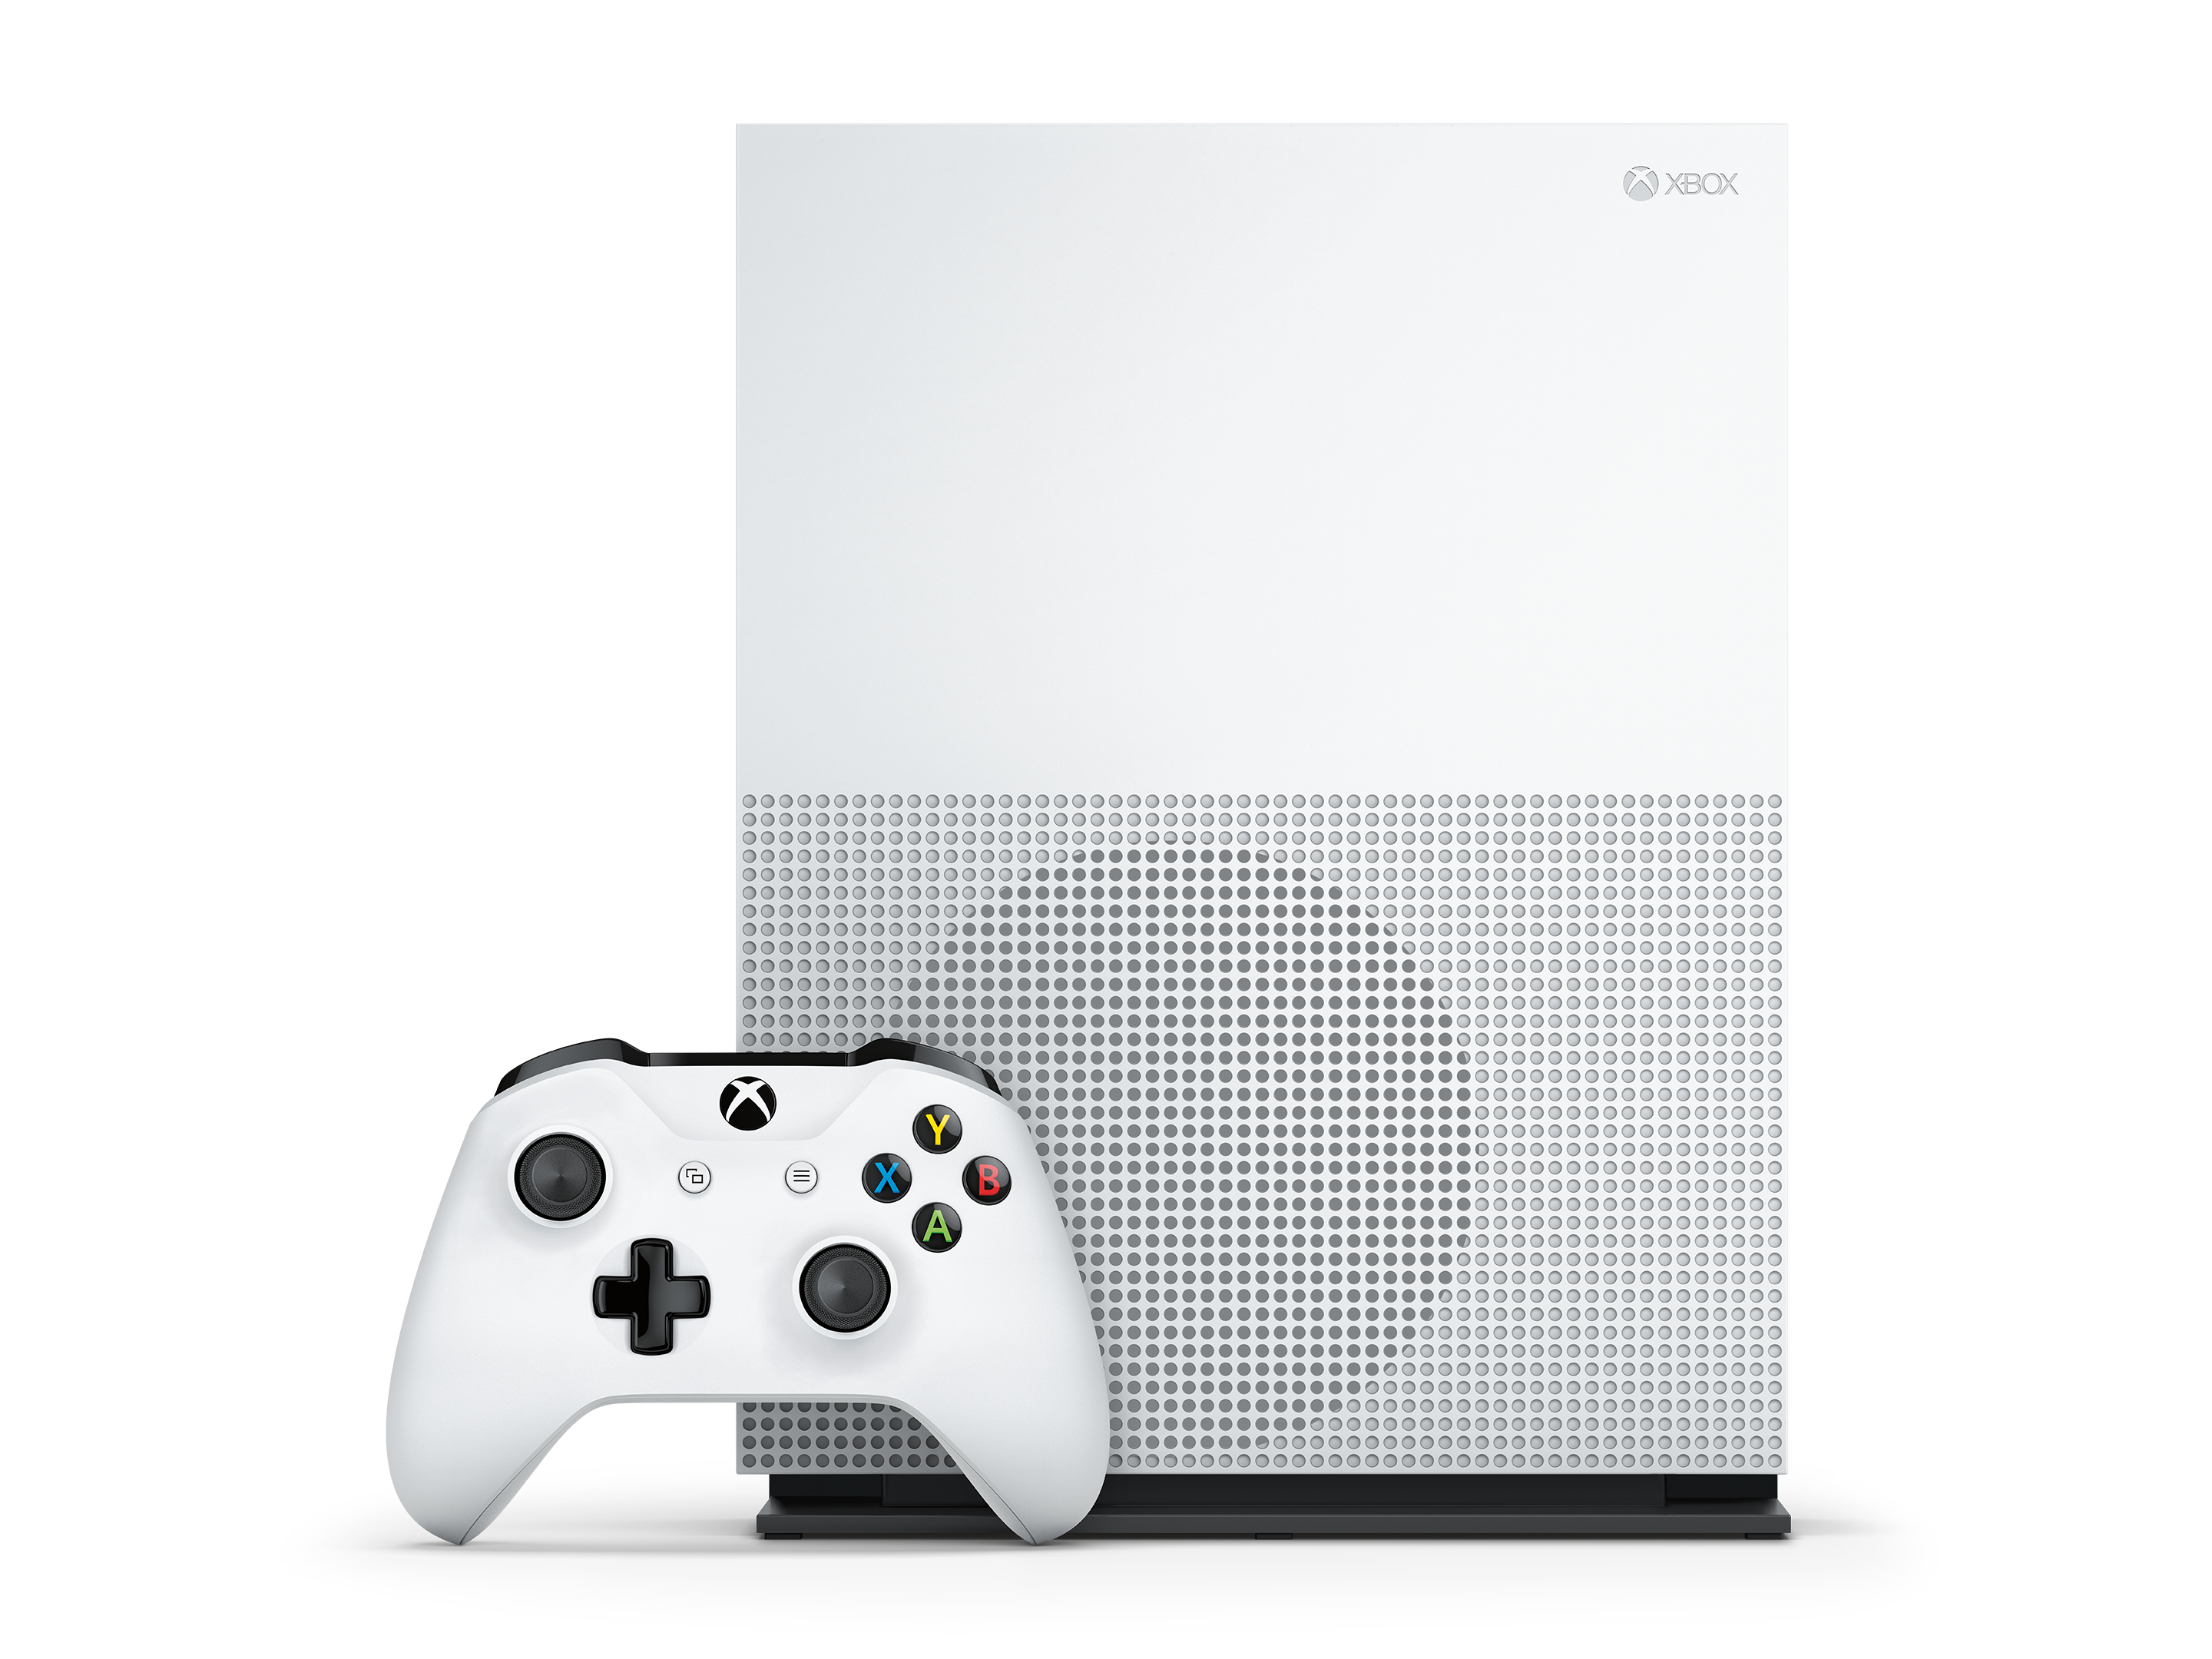 Xbox one s png. Photo